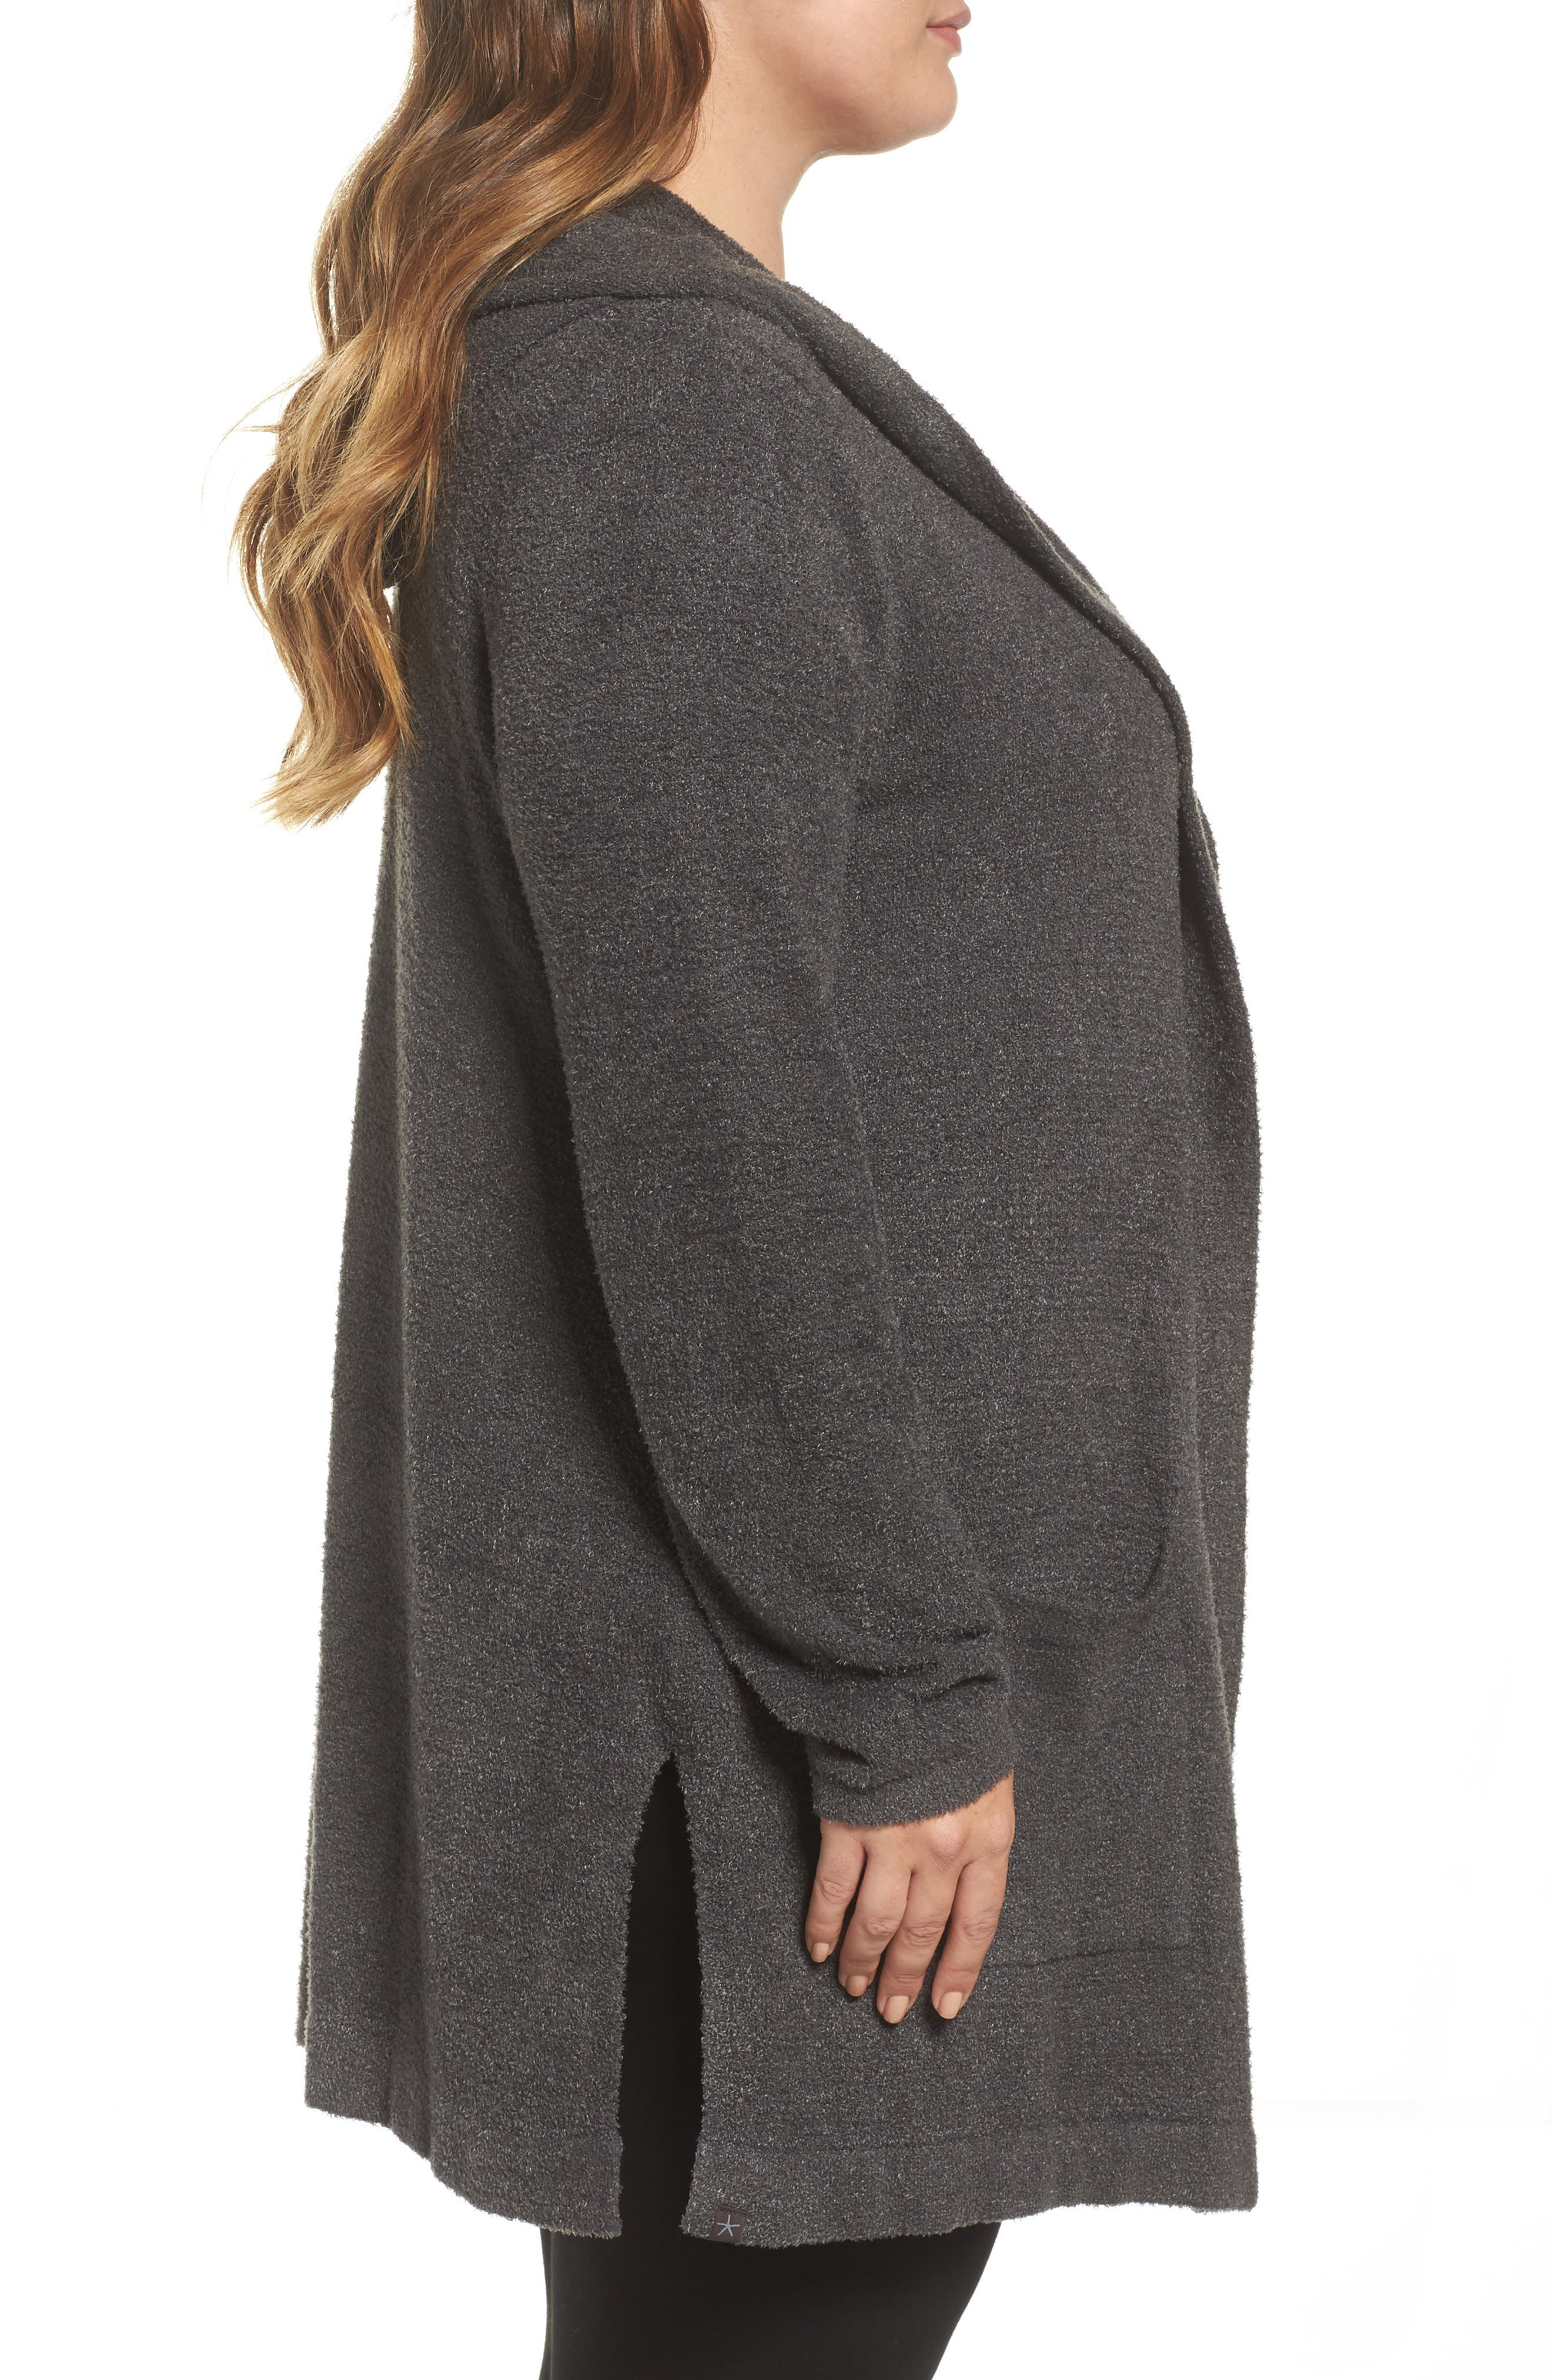 Cozychic Lite<sup>®</sup> Coastal Hooded Cardigan,                             Alternate thumbnail 3, color,                             CARBON